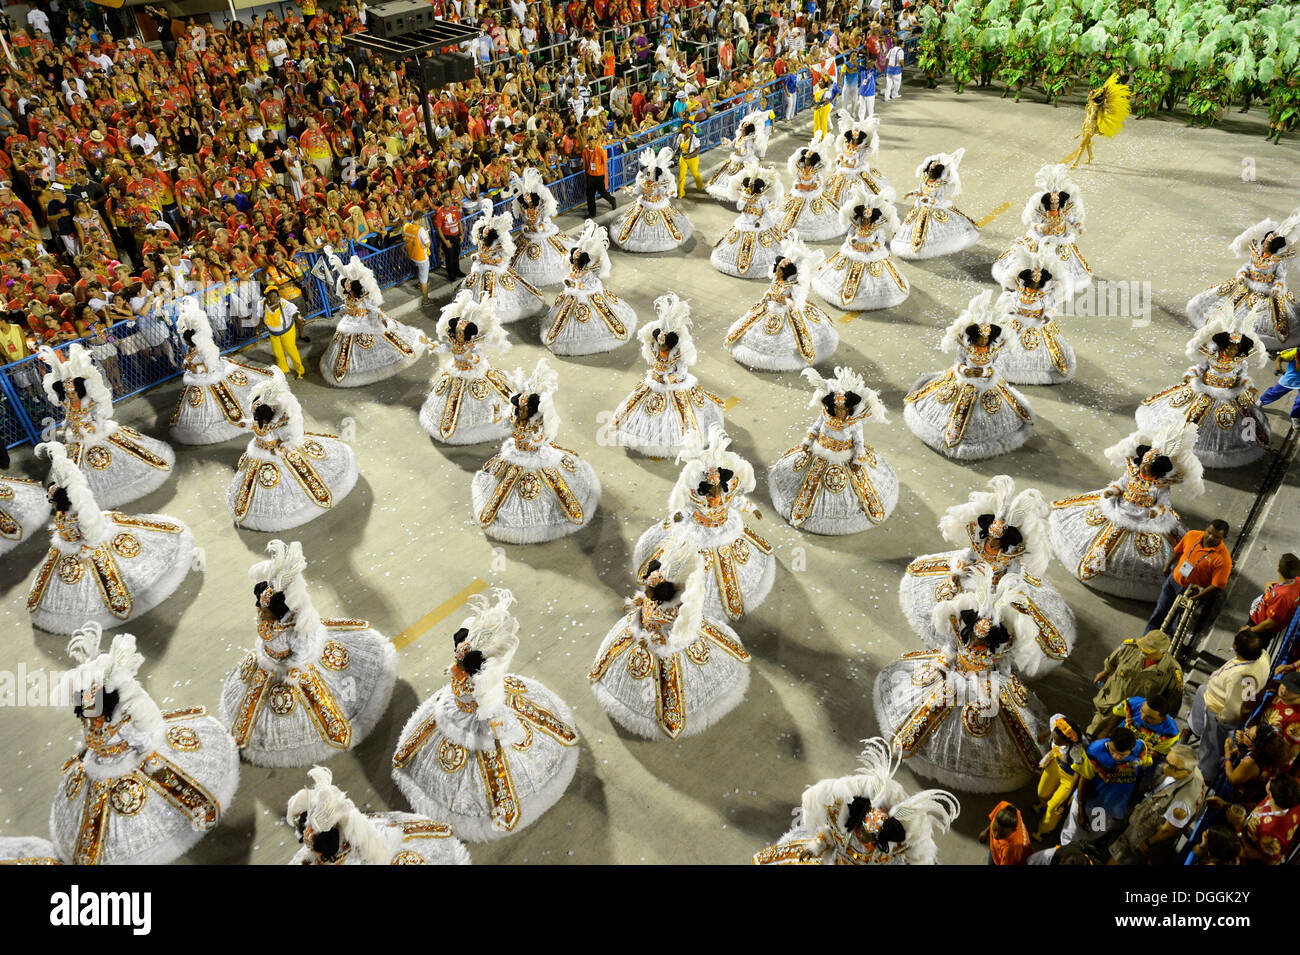 "Female dancers wearing wide skirts, Bahianas, parade of the samba school Unidos da Tijuca, themed ""Enchanted Germany"" Stock Photo"